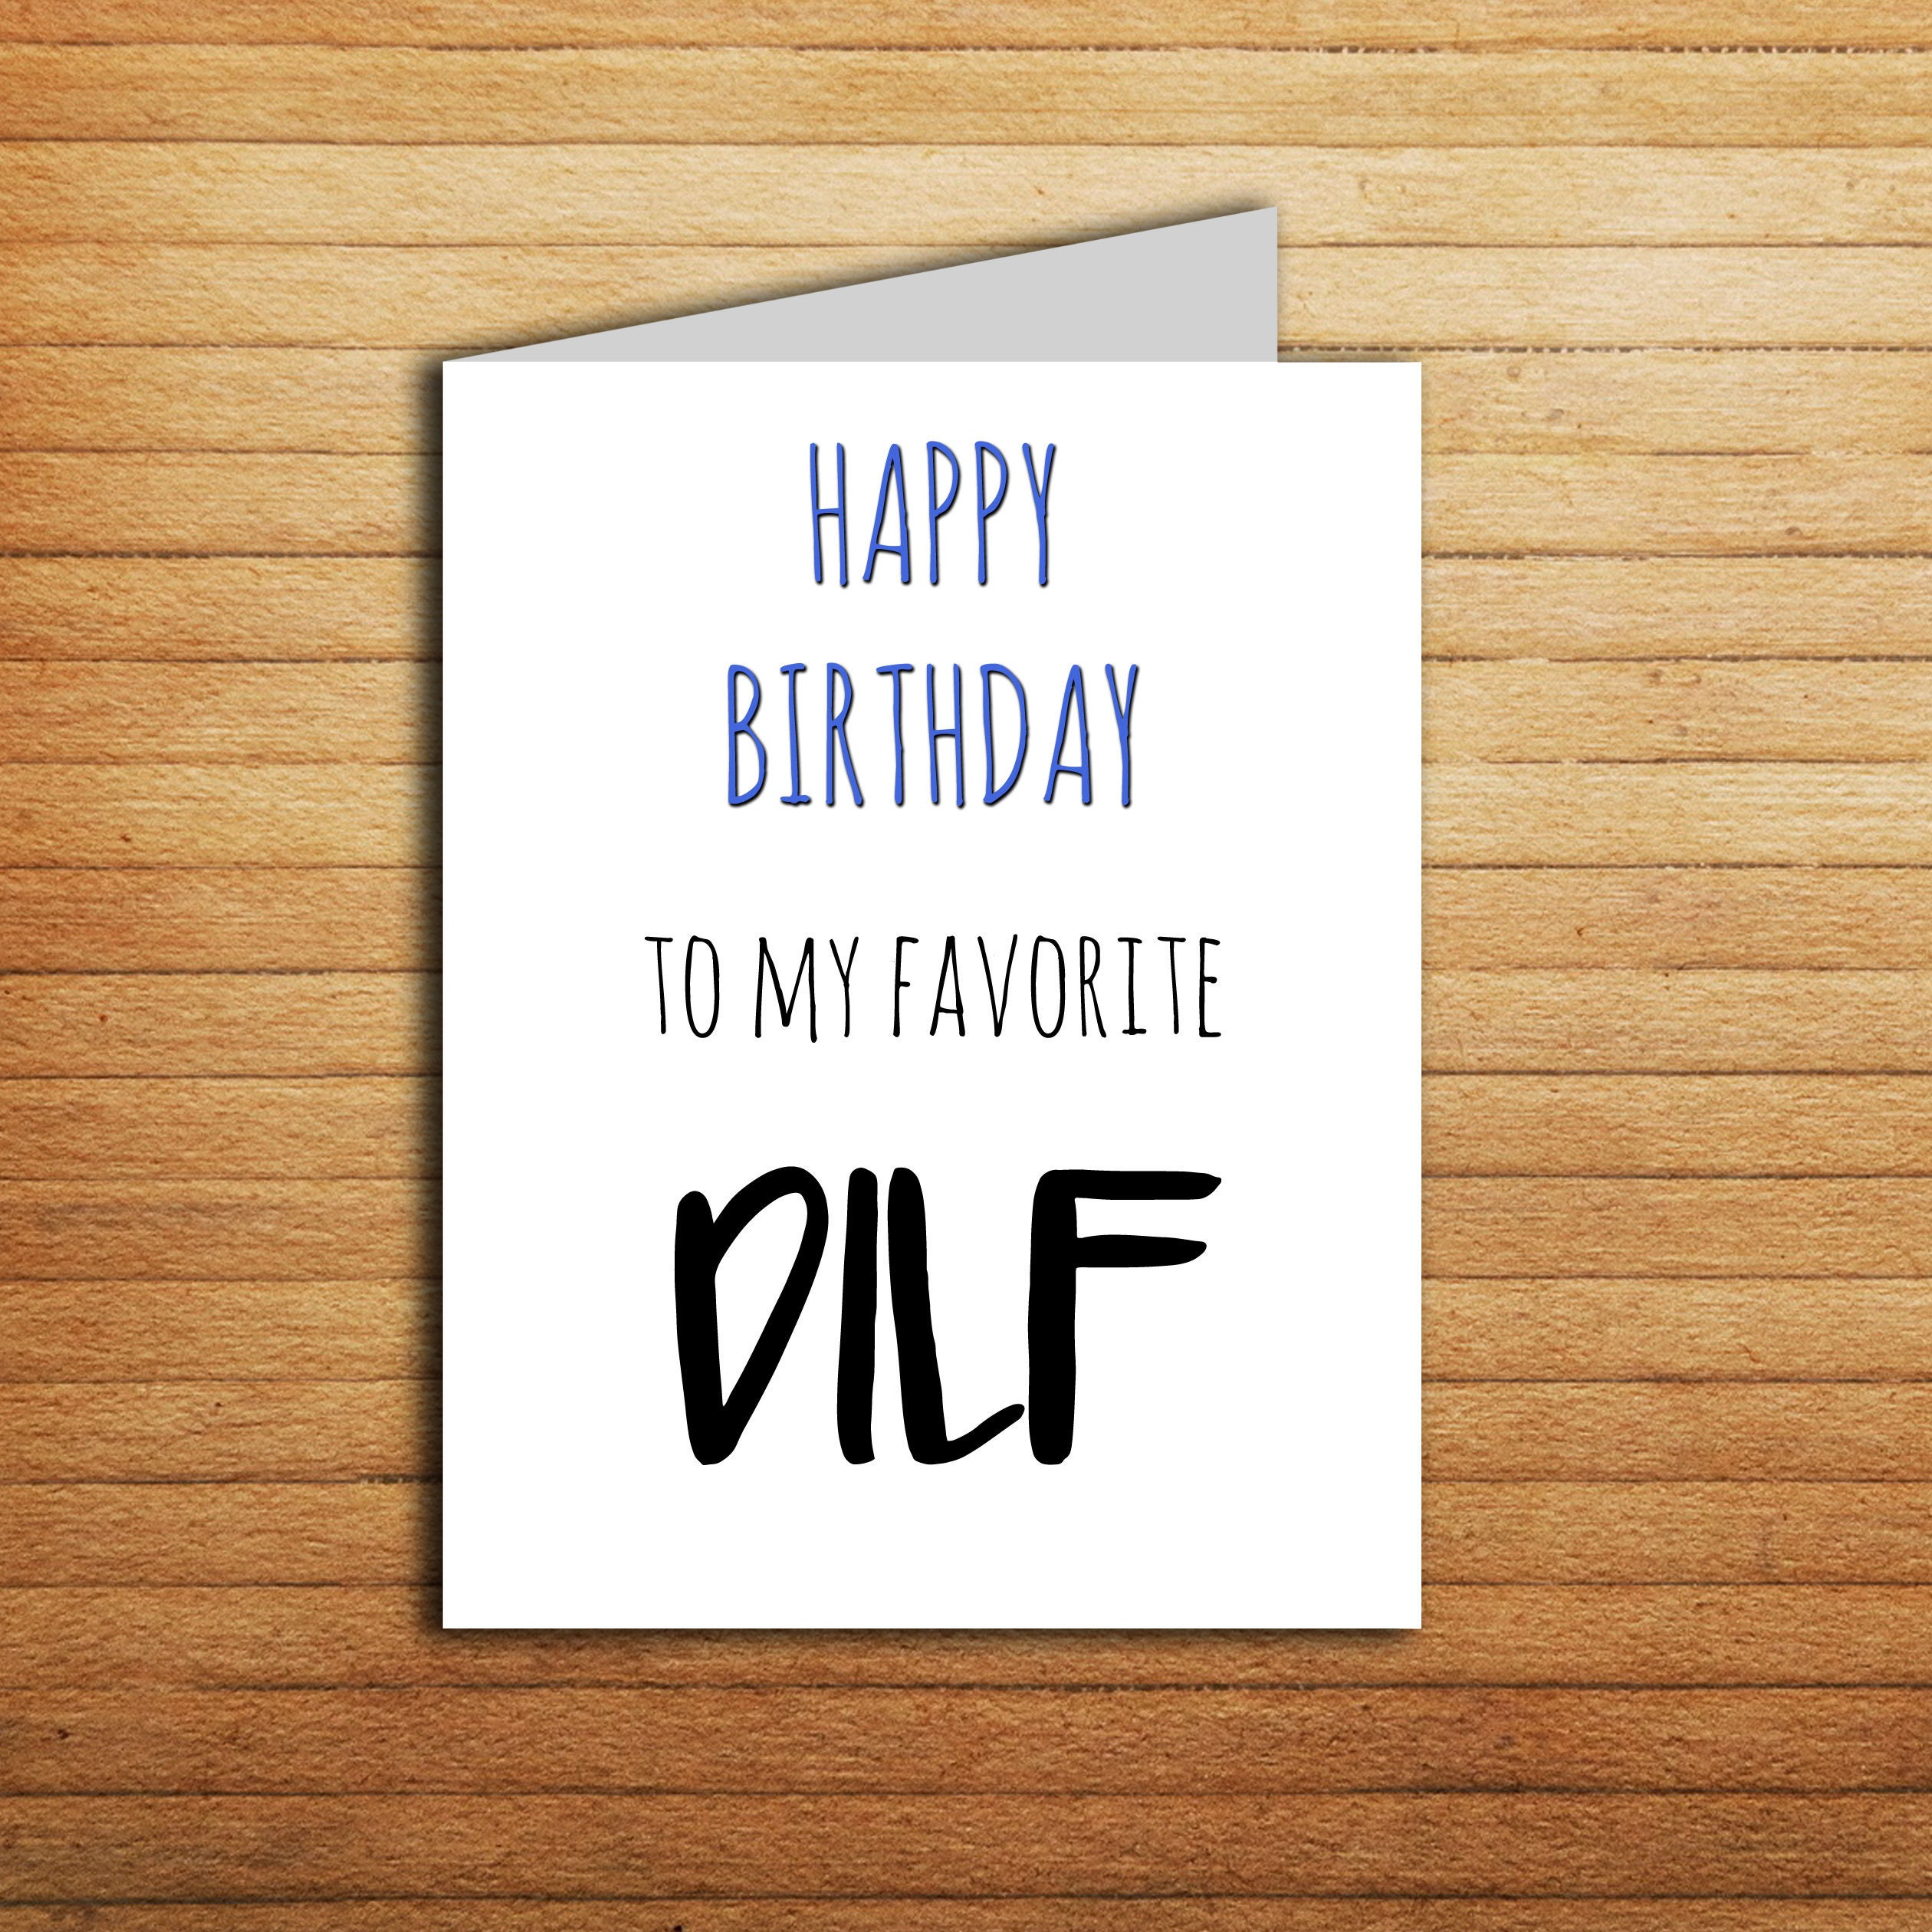 Happy Birthday to my Favorite DILF card for a Dad card